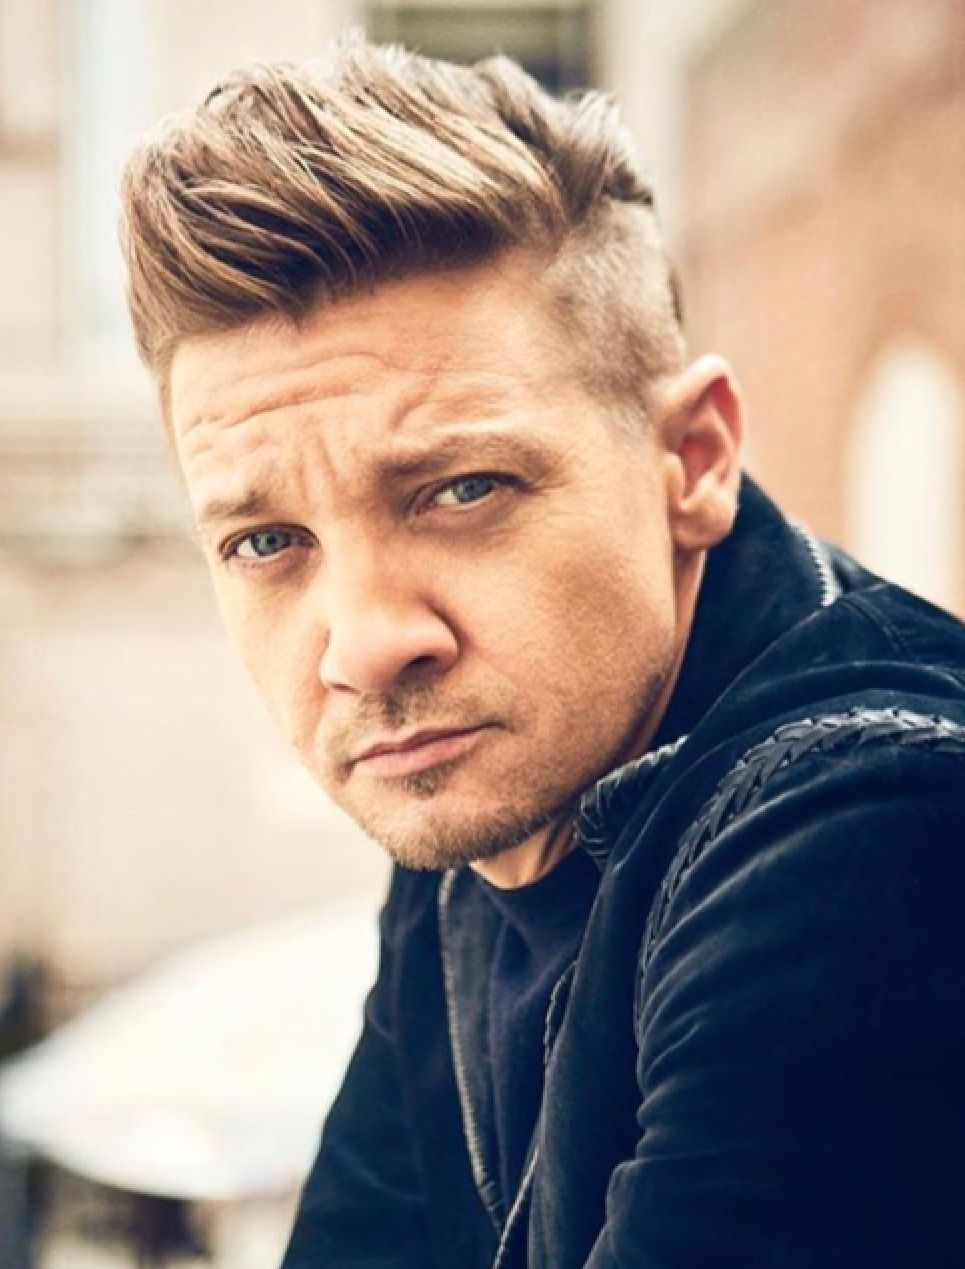 jeremy renner | hotties | jeremy renner, hair cuts, jake gyllenhaal